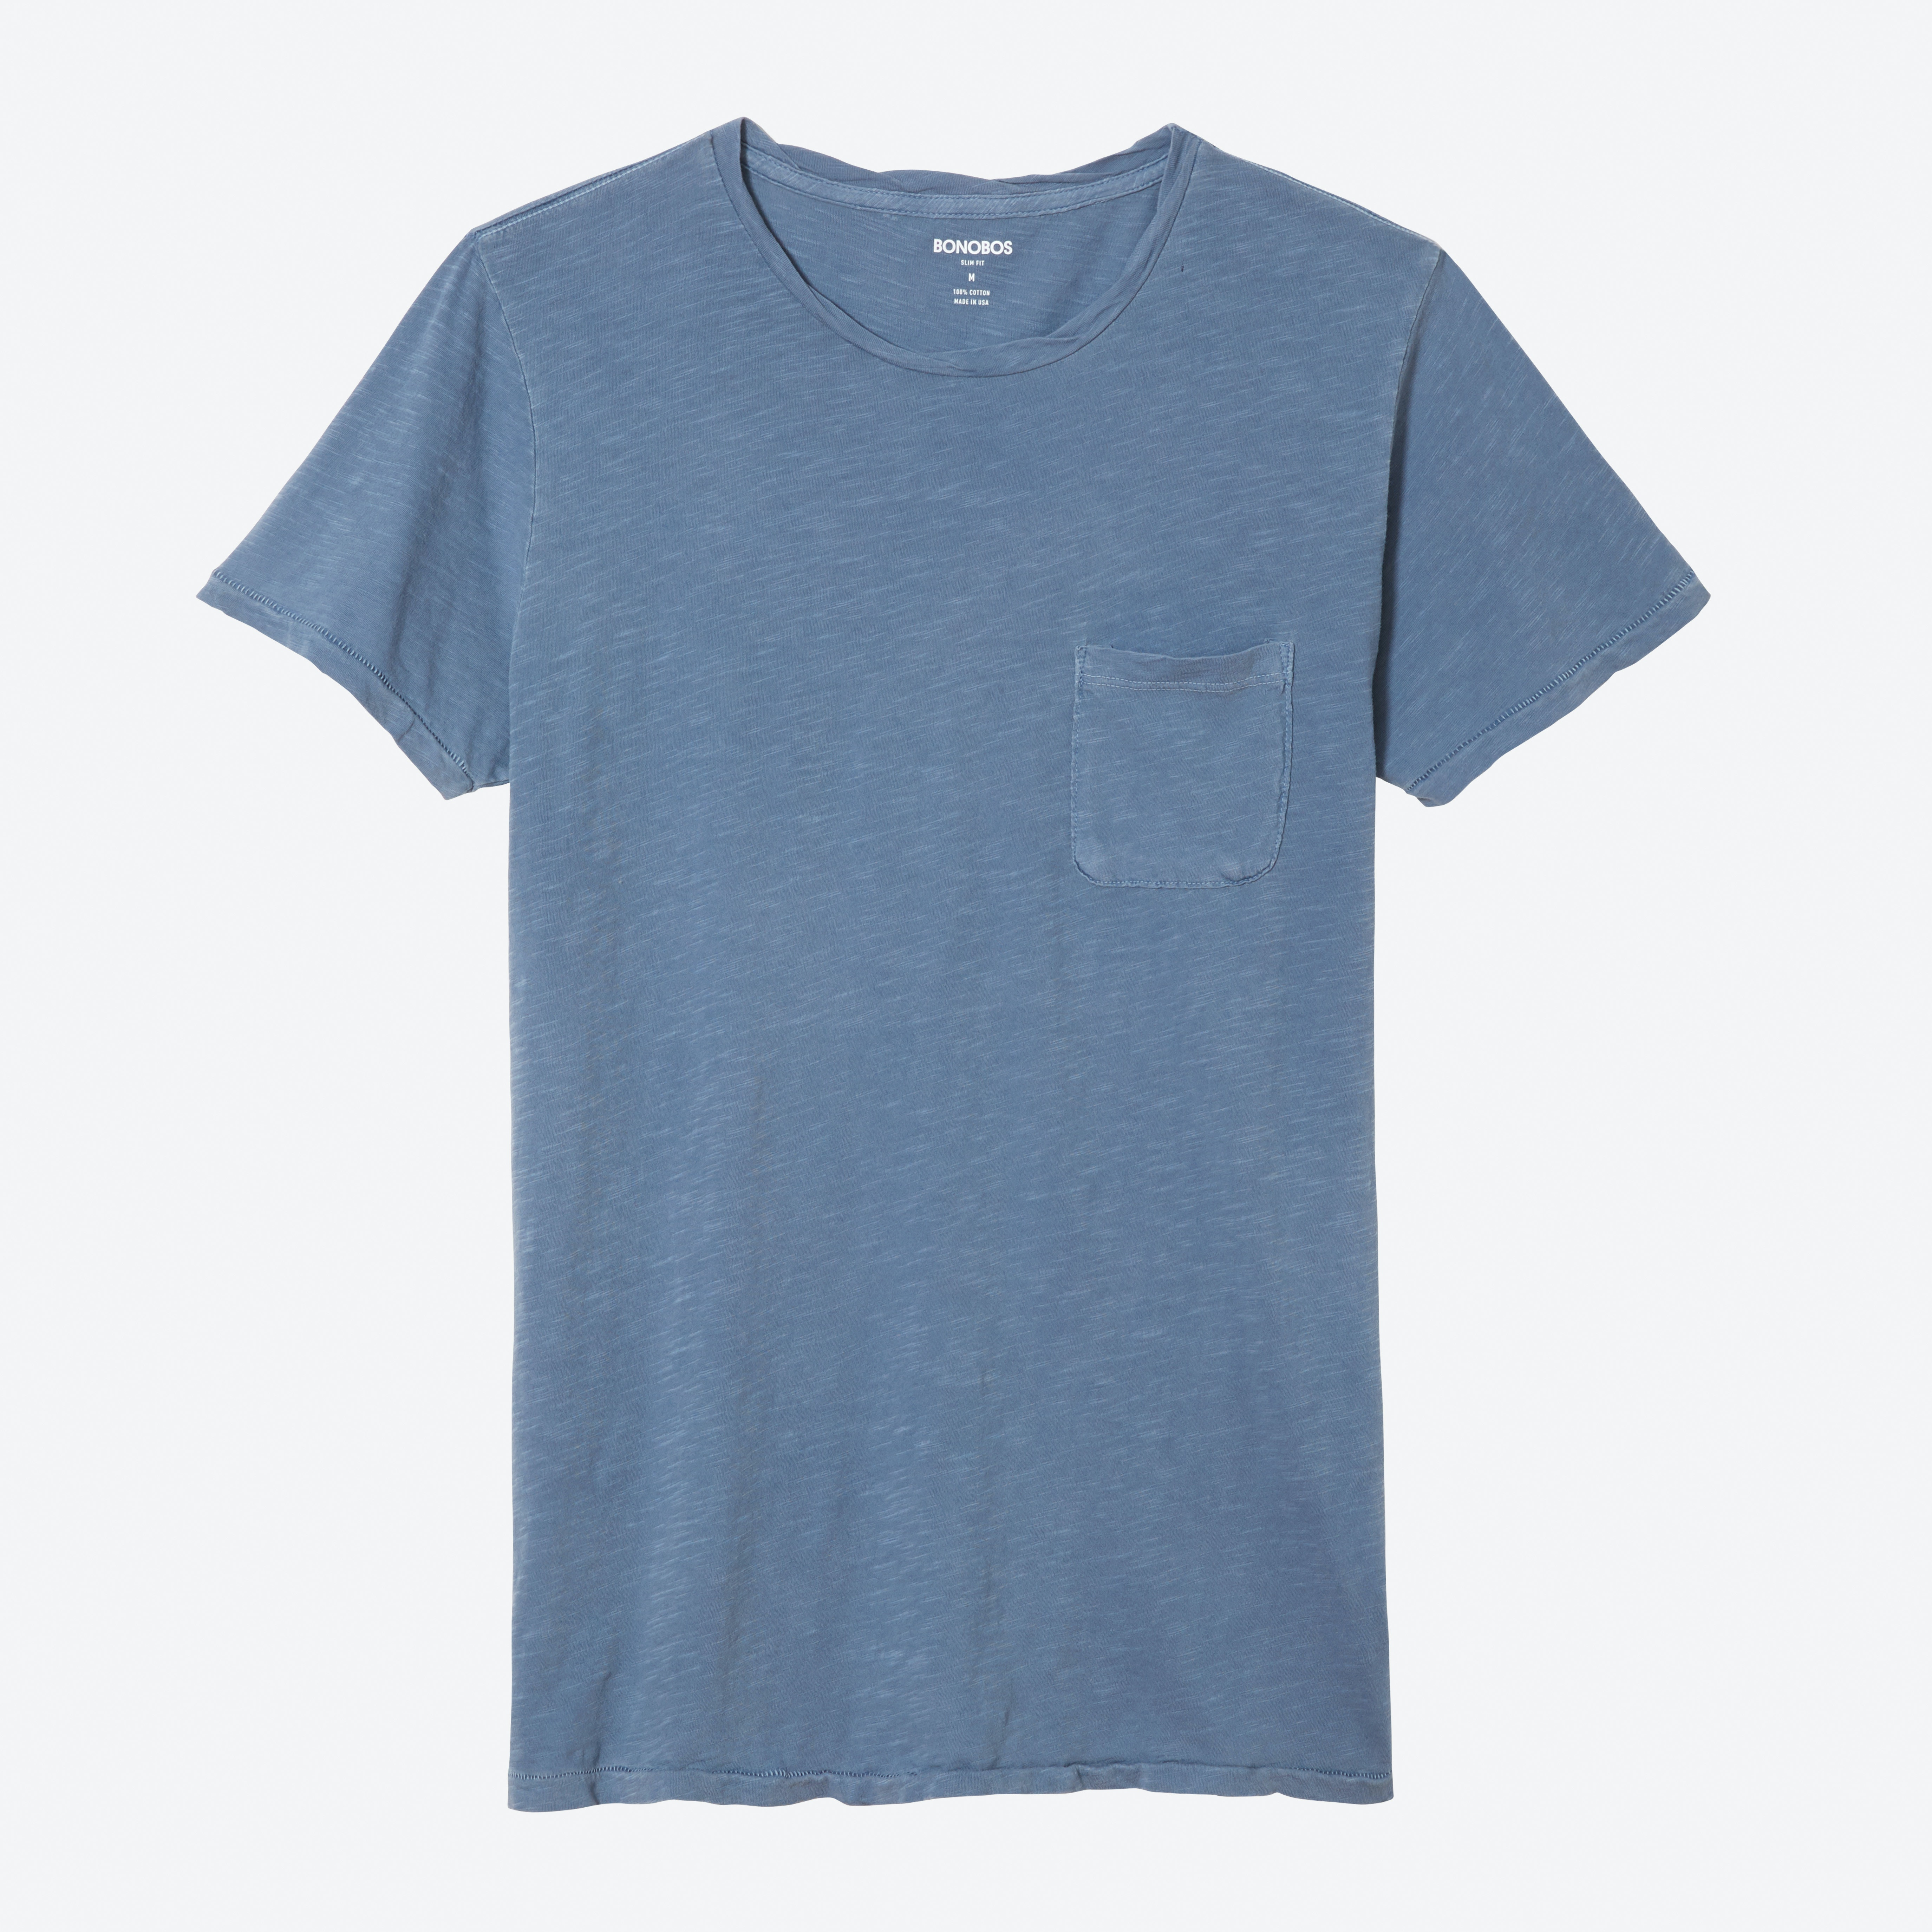 Summer Weight Beach Tee